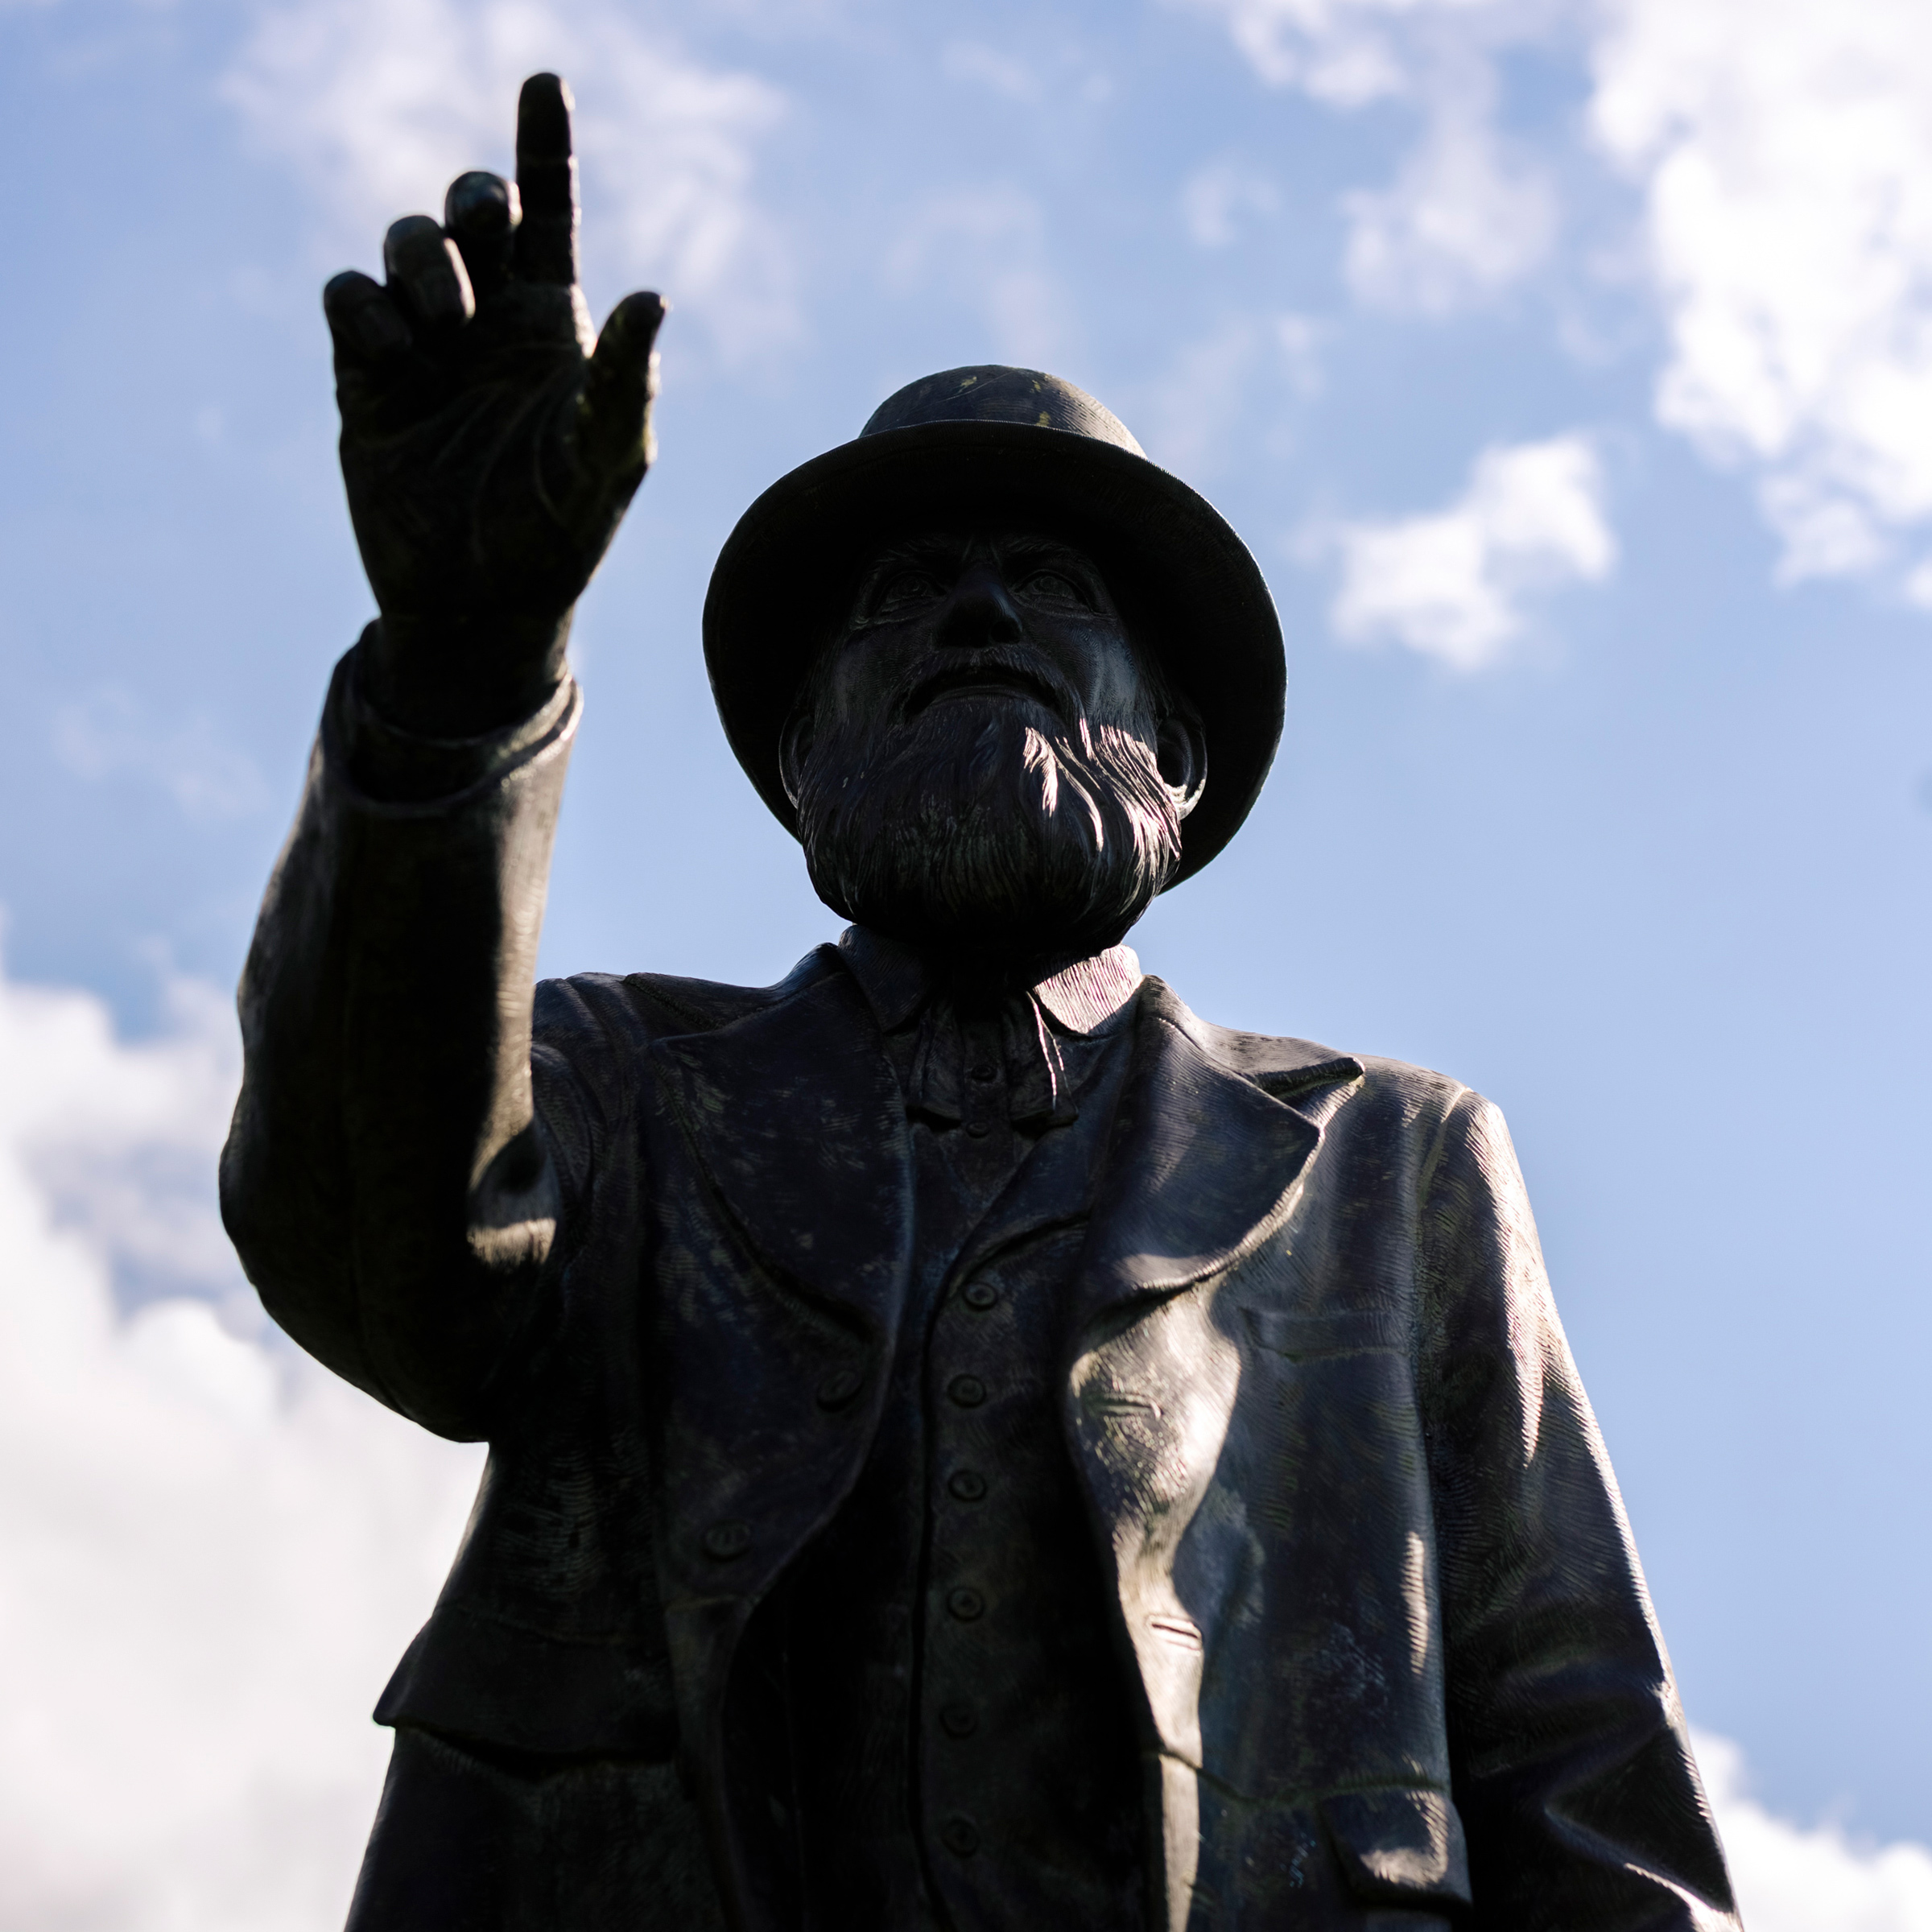 A statue of Stephen Tuttle Thompson, Arab's founder